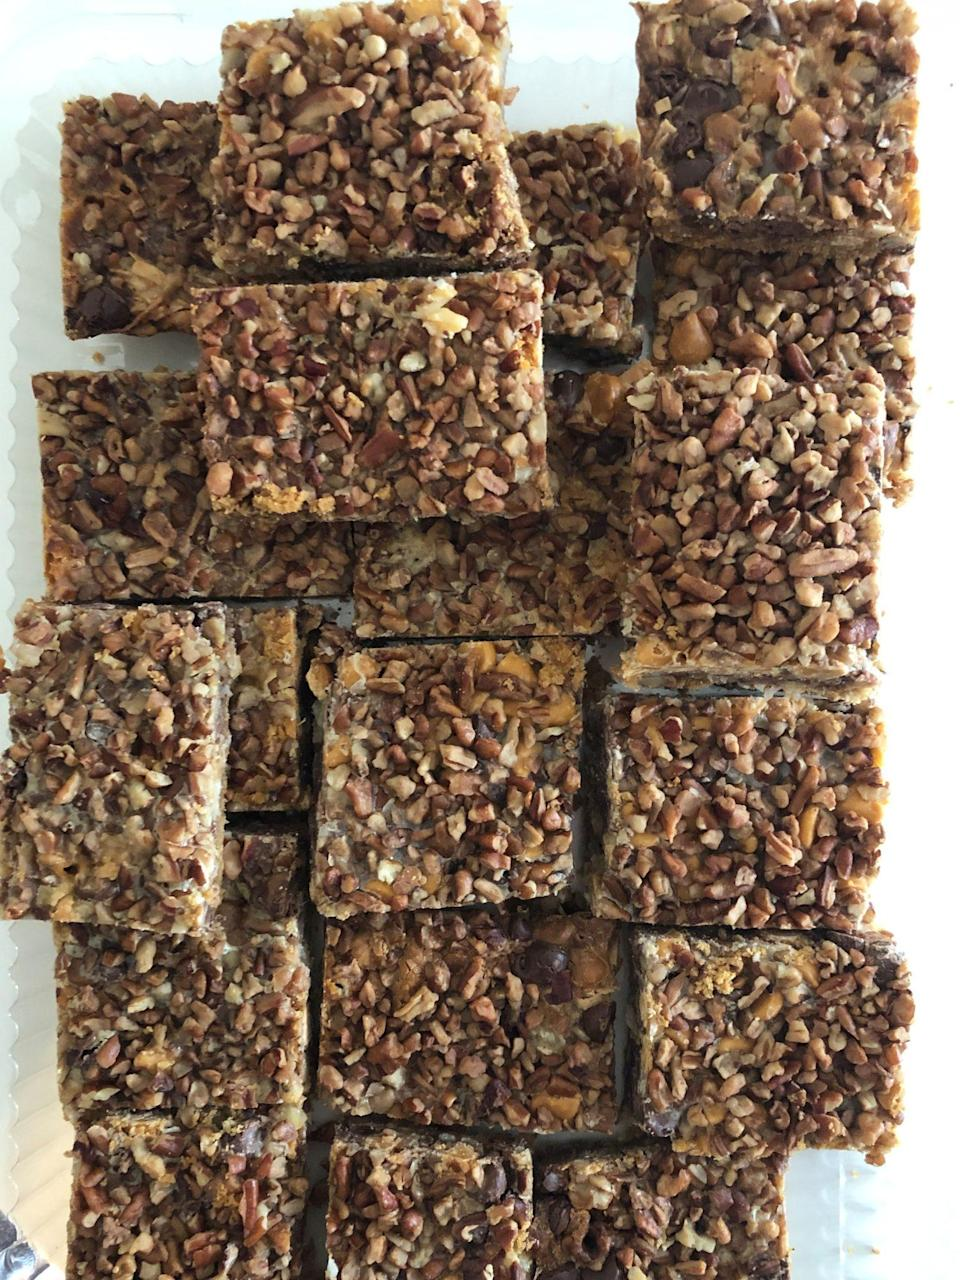 """<p><strong>Recipe: <a href=""""https://www.southernliving.com/recipes/7-layer-cookies"""" rel=""""nofollow noopener"""" target=""""_blank"""" data-ylk=""""slk:Seven-Layer Cookies"""" class=""""link rapid-noclick-resp"""">Seven-Layer Cookies</a></strong></p> <p>These sweet and rich cookies come together in a flash, making them the ultimate last-minute dessert.</p>"""